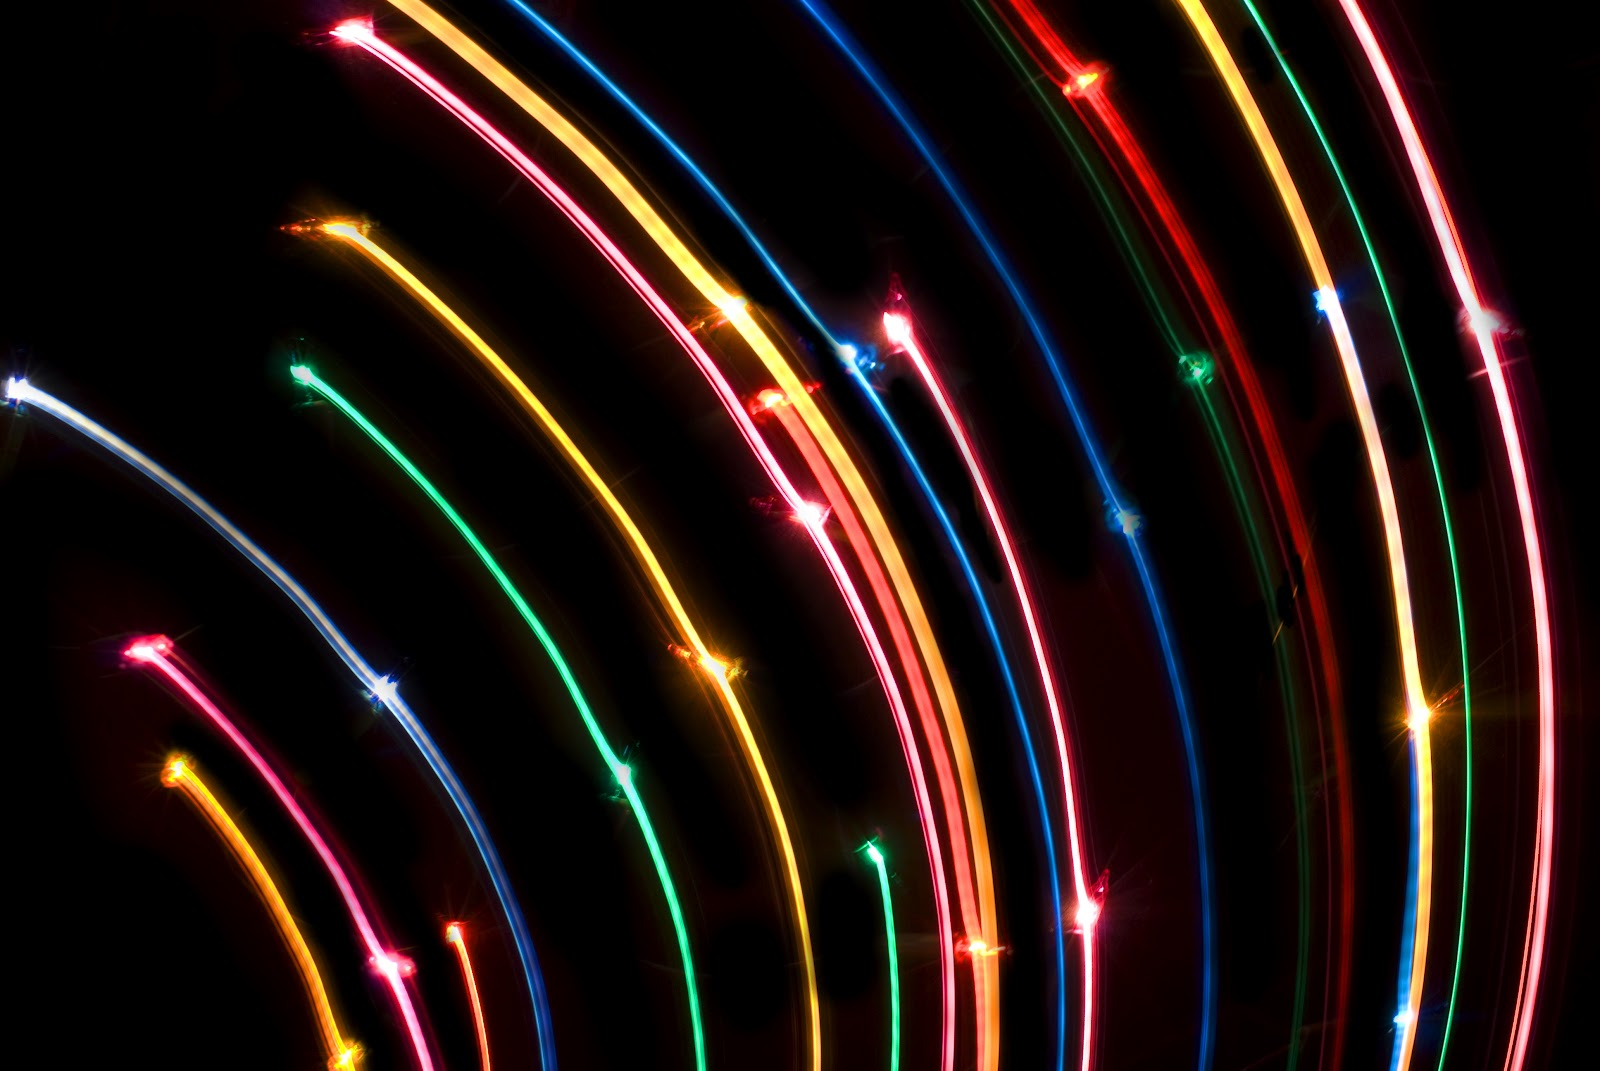 Abstract Light | HD Wallpapers (High Definition) | Free ...